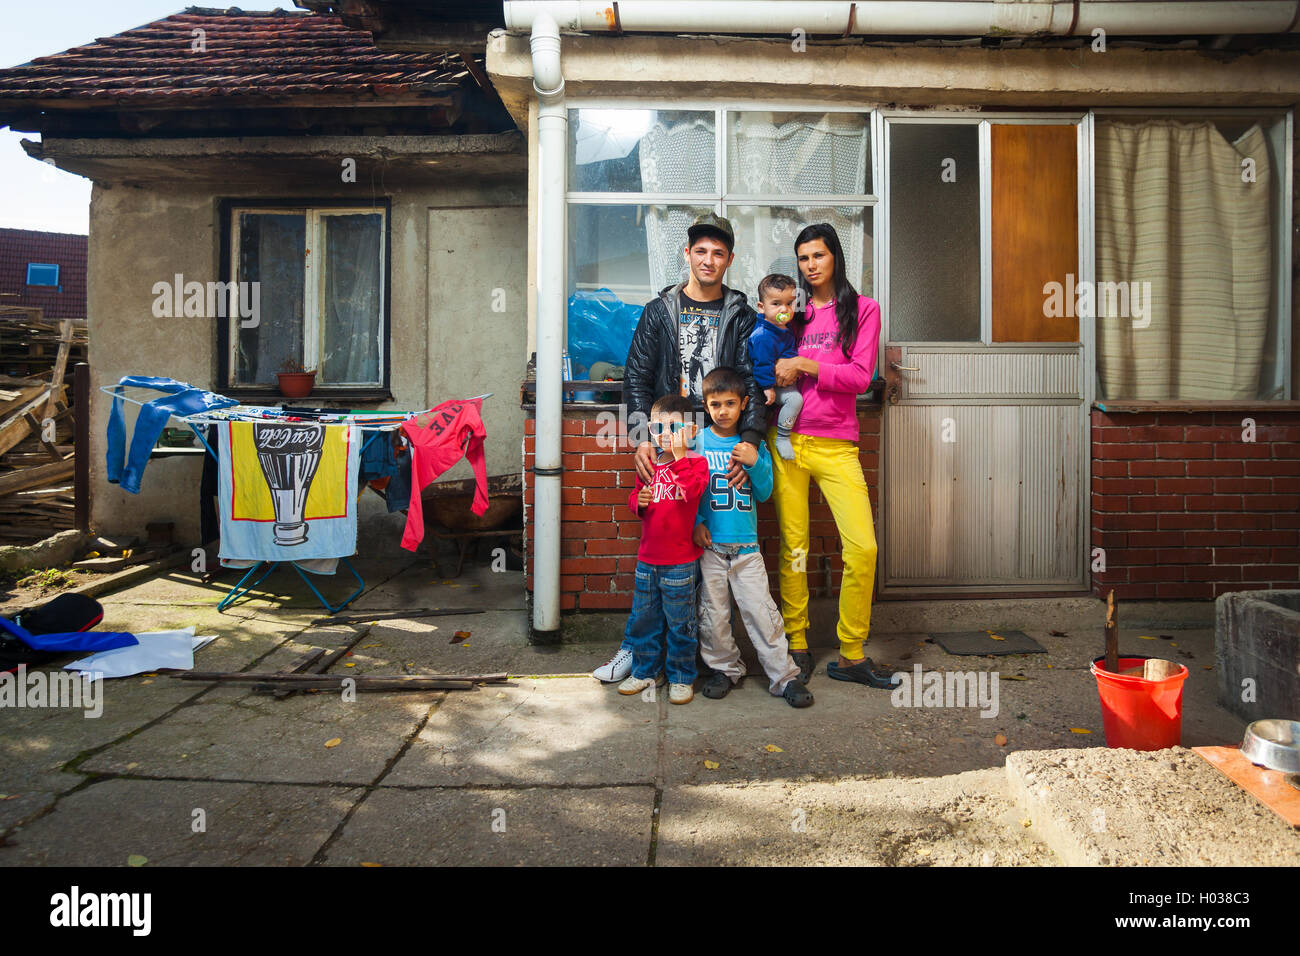 ZAGREB, CROATIA - OCTOBER 21, 2013: Roma family posing in front of their house. - Stock Image